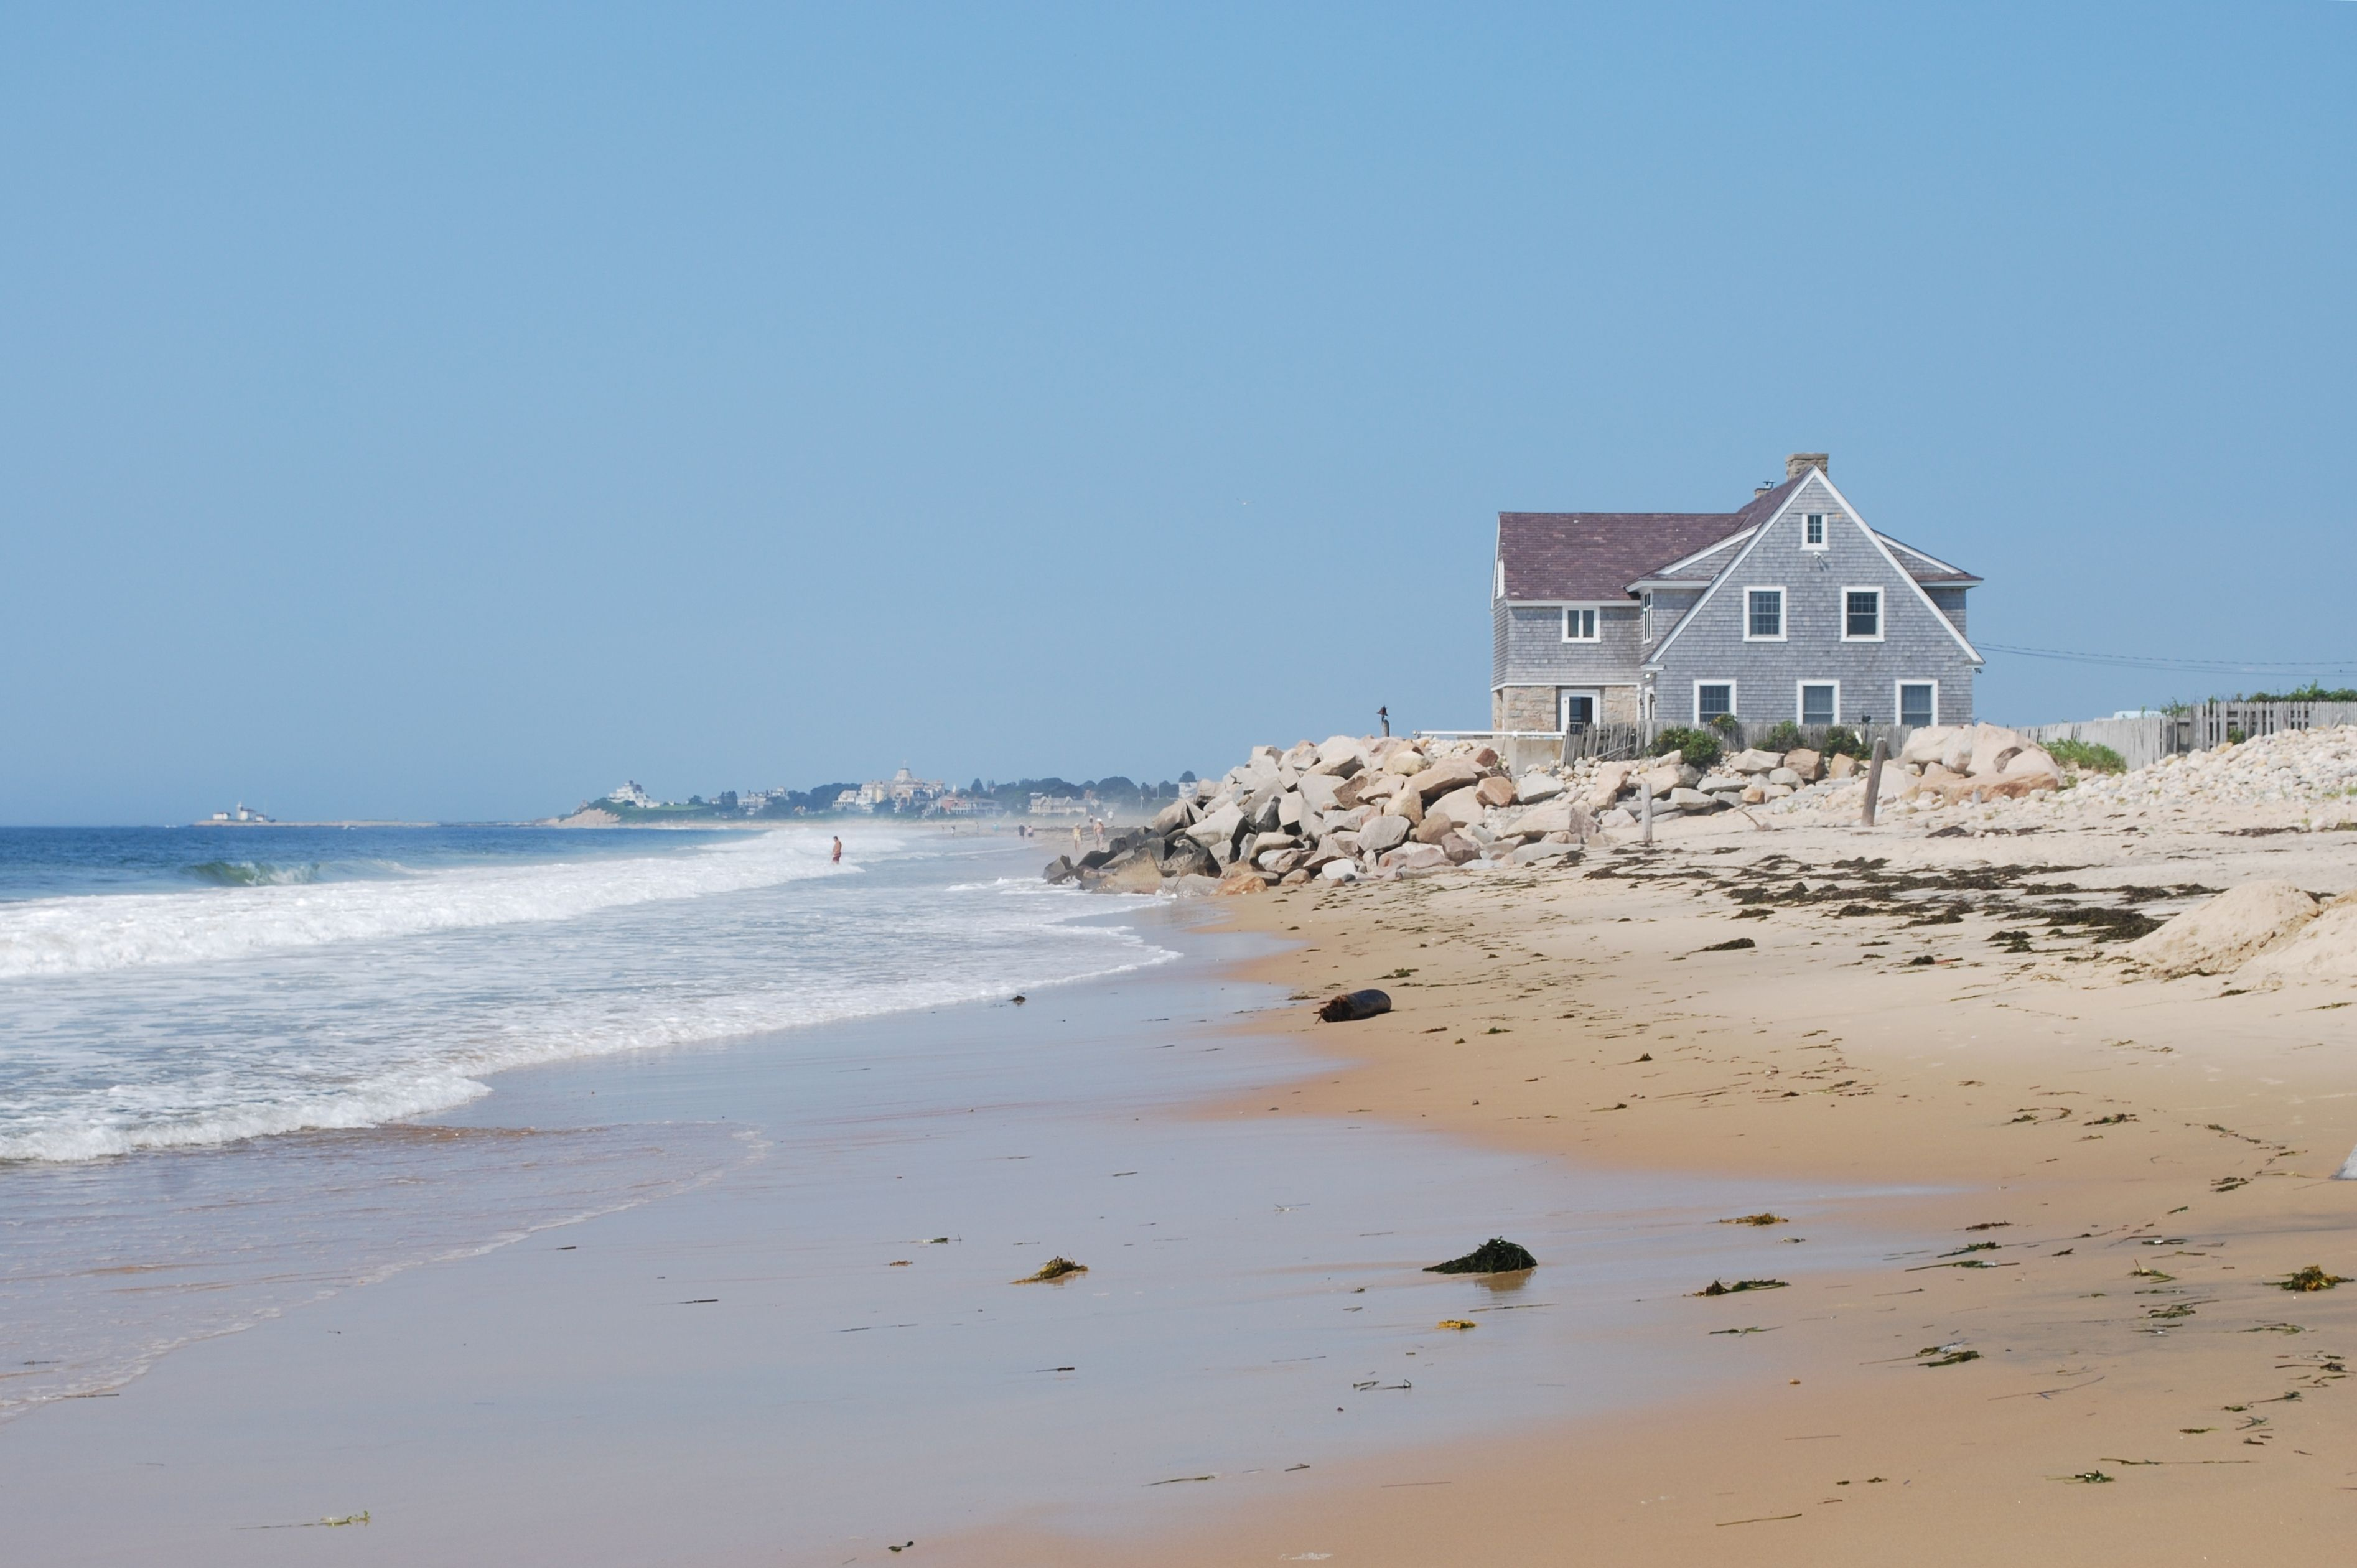 Misquamicut Beach In Westerly Ri Www Mottandchace Rhode Island Mott And Chace Sotheby S International Realty